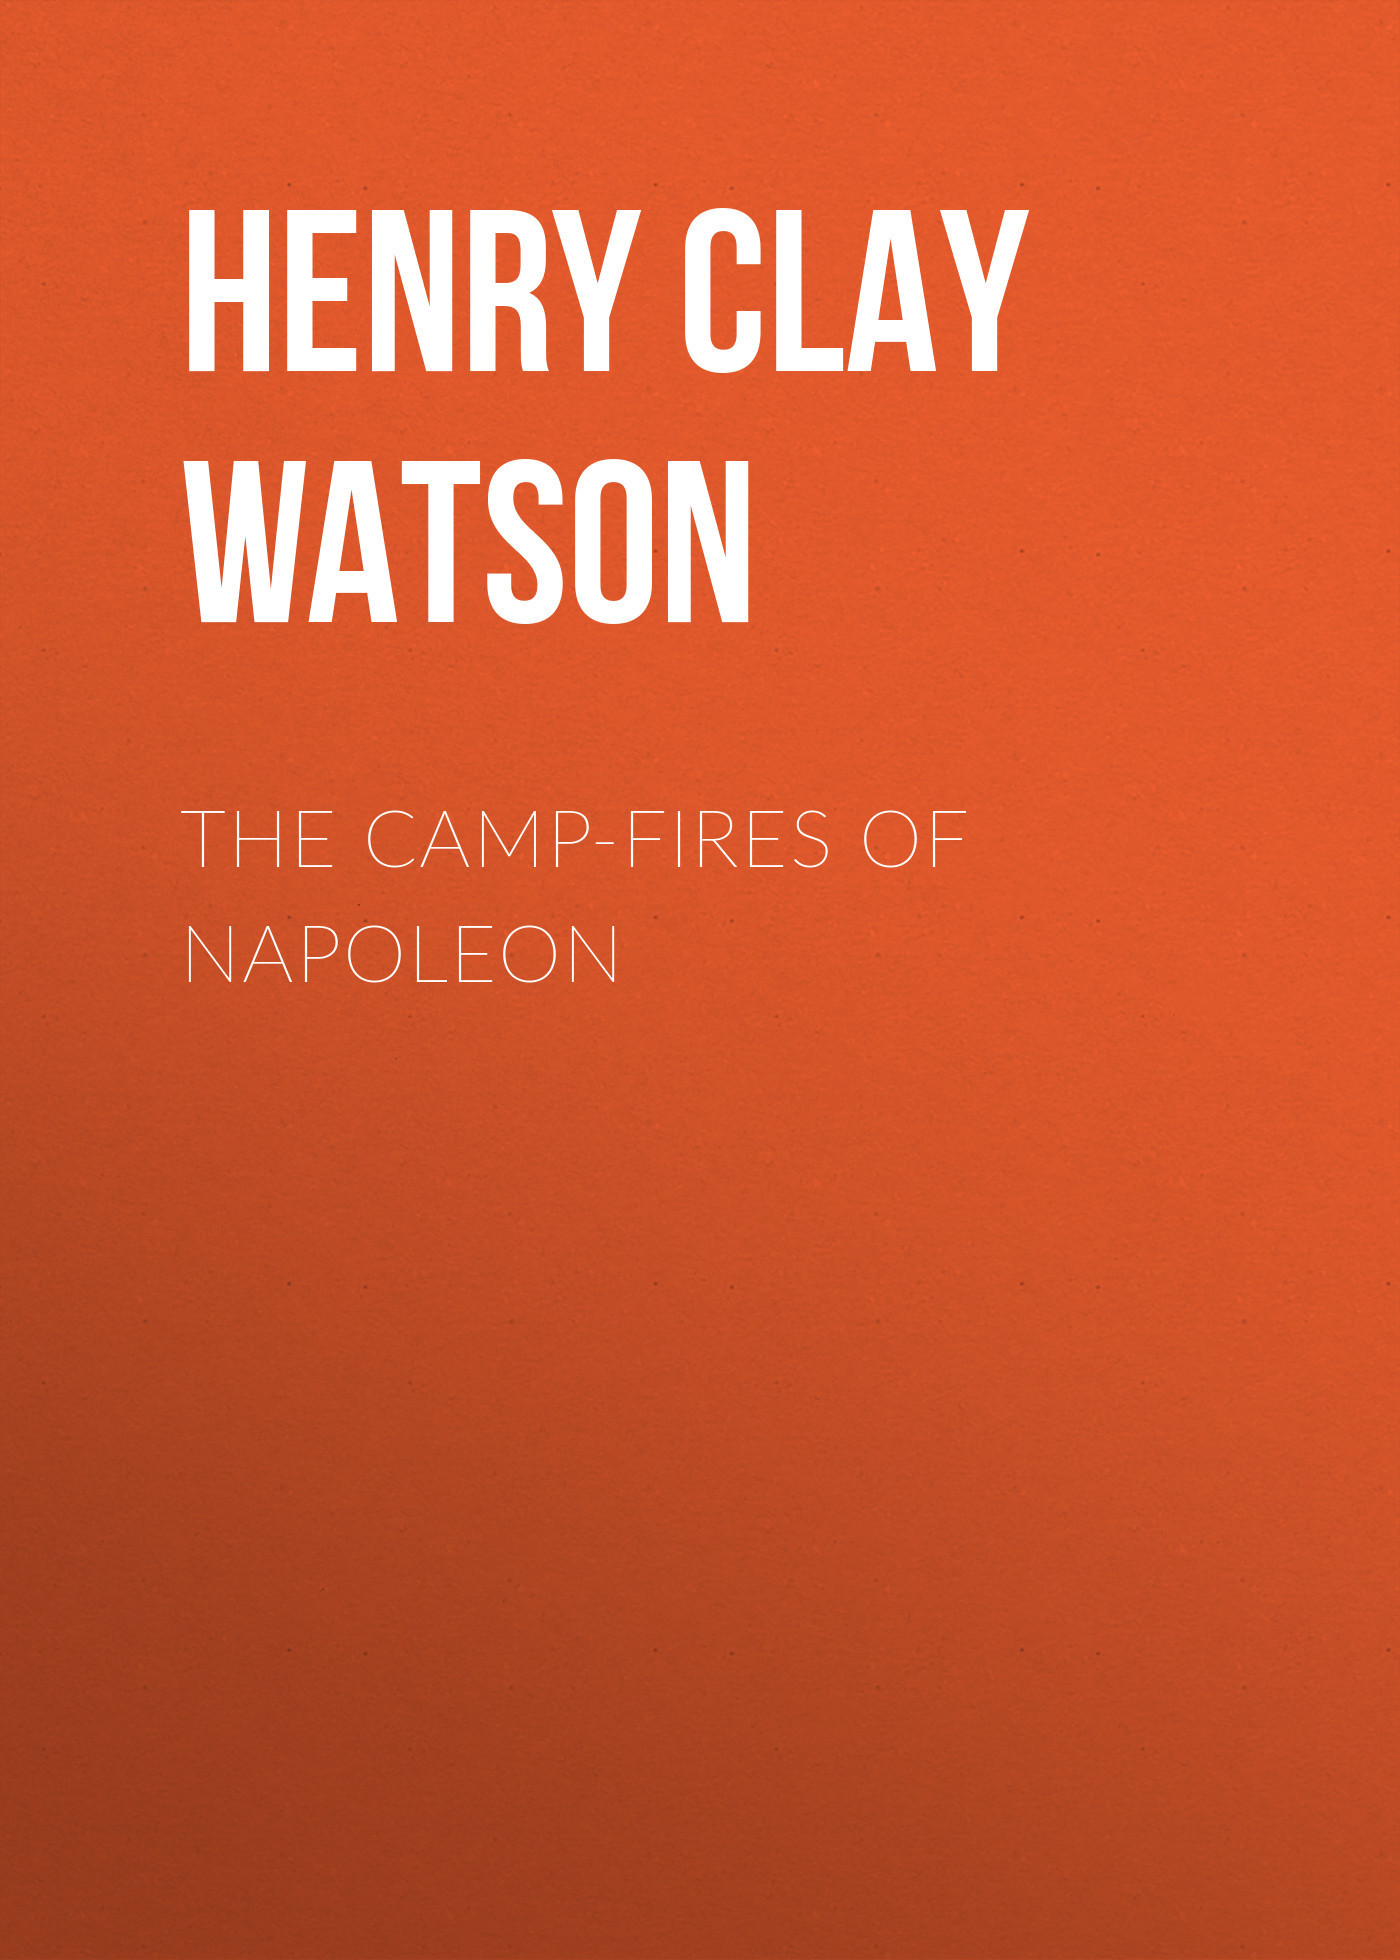 Henry Clay Watson The Camp-fires of Napoleon